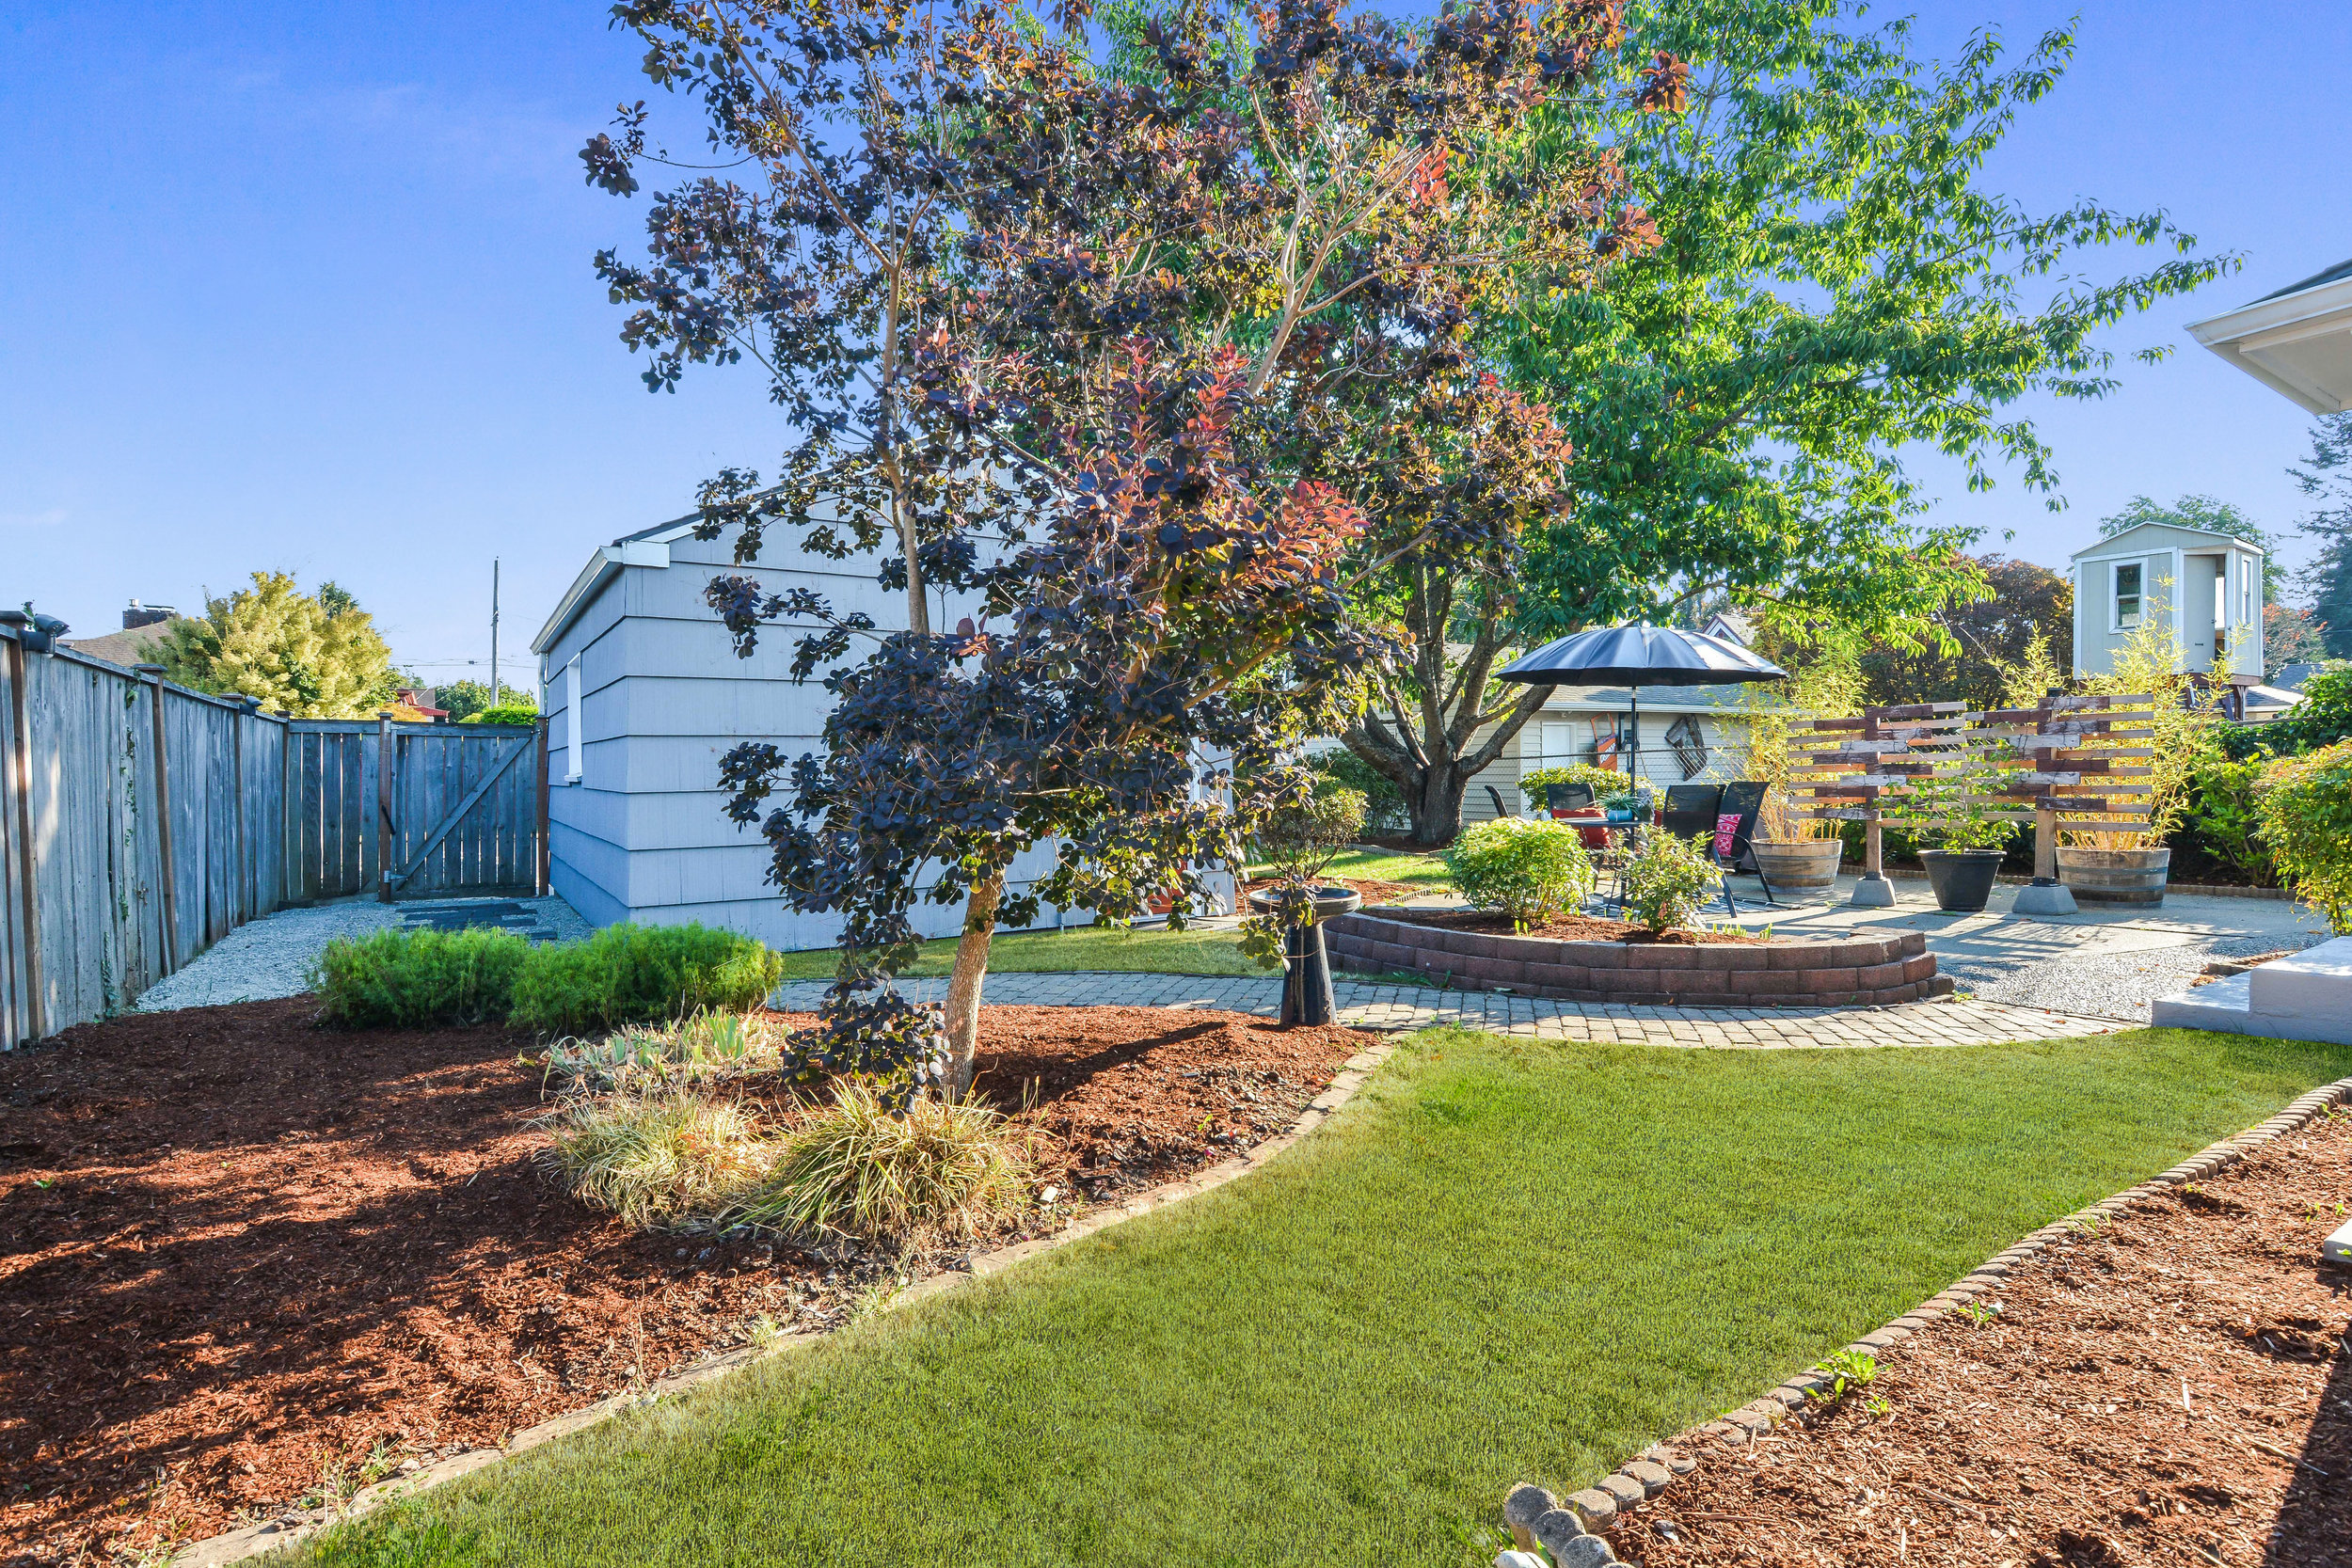 Lawn space, landscaped beds, and pretty trees surround the paved patio in this fully fenced backyard.